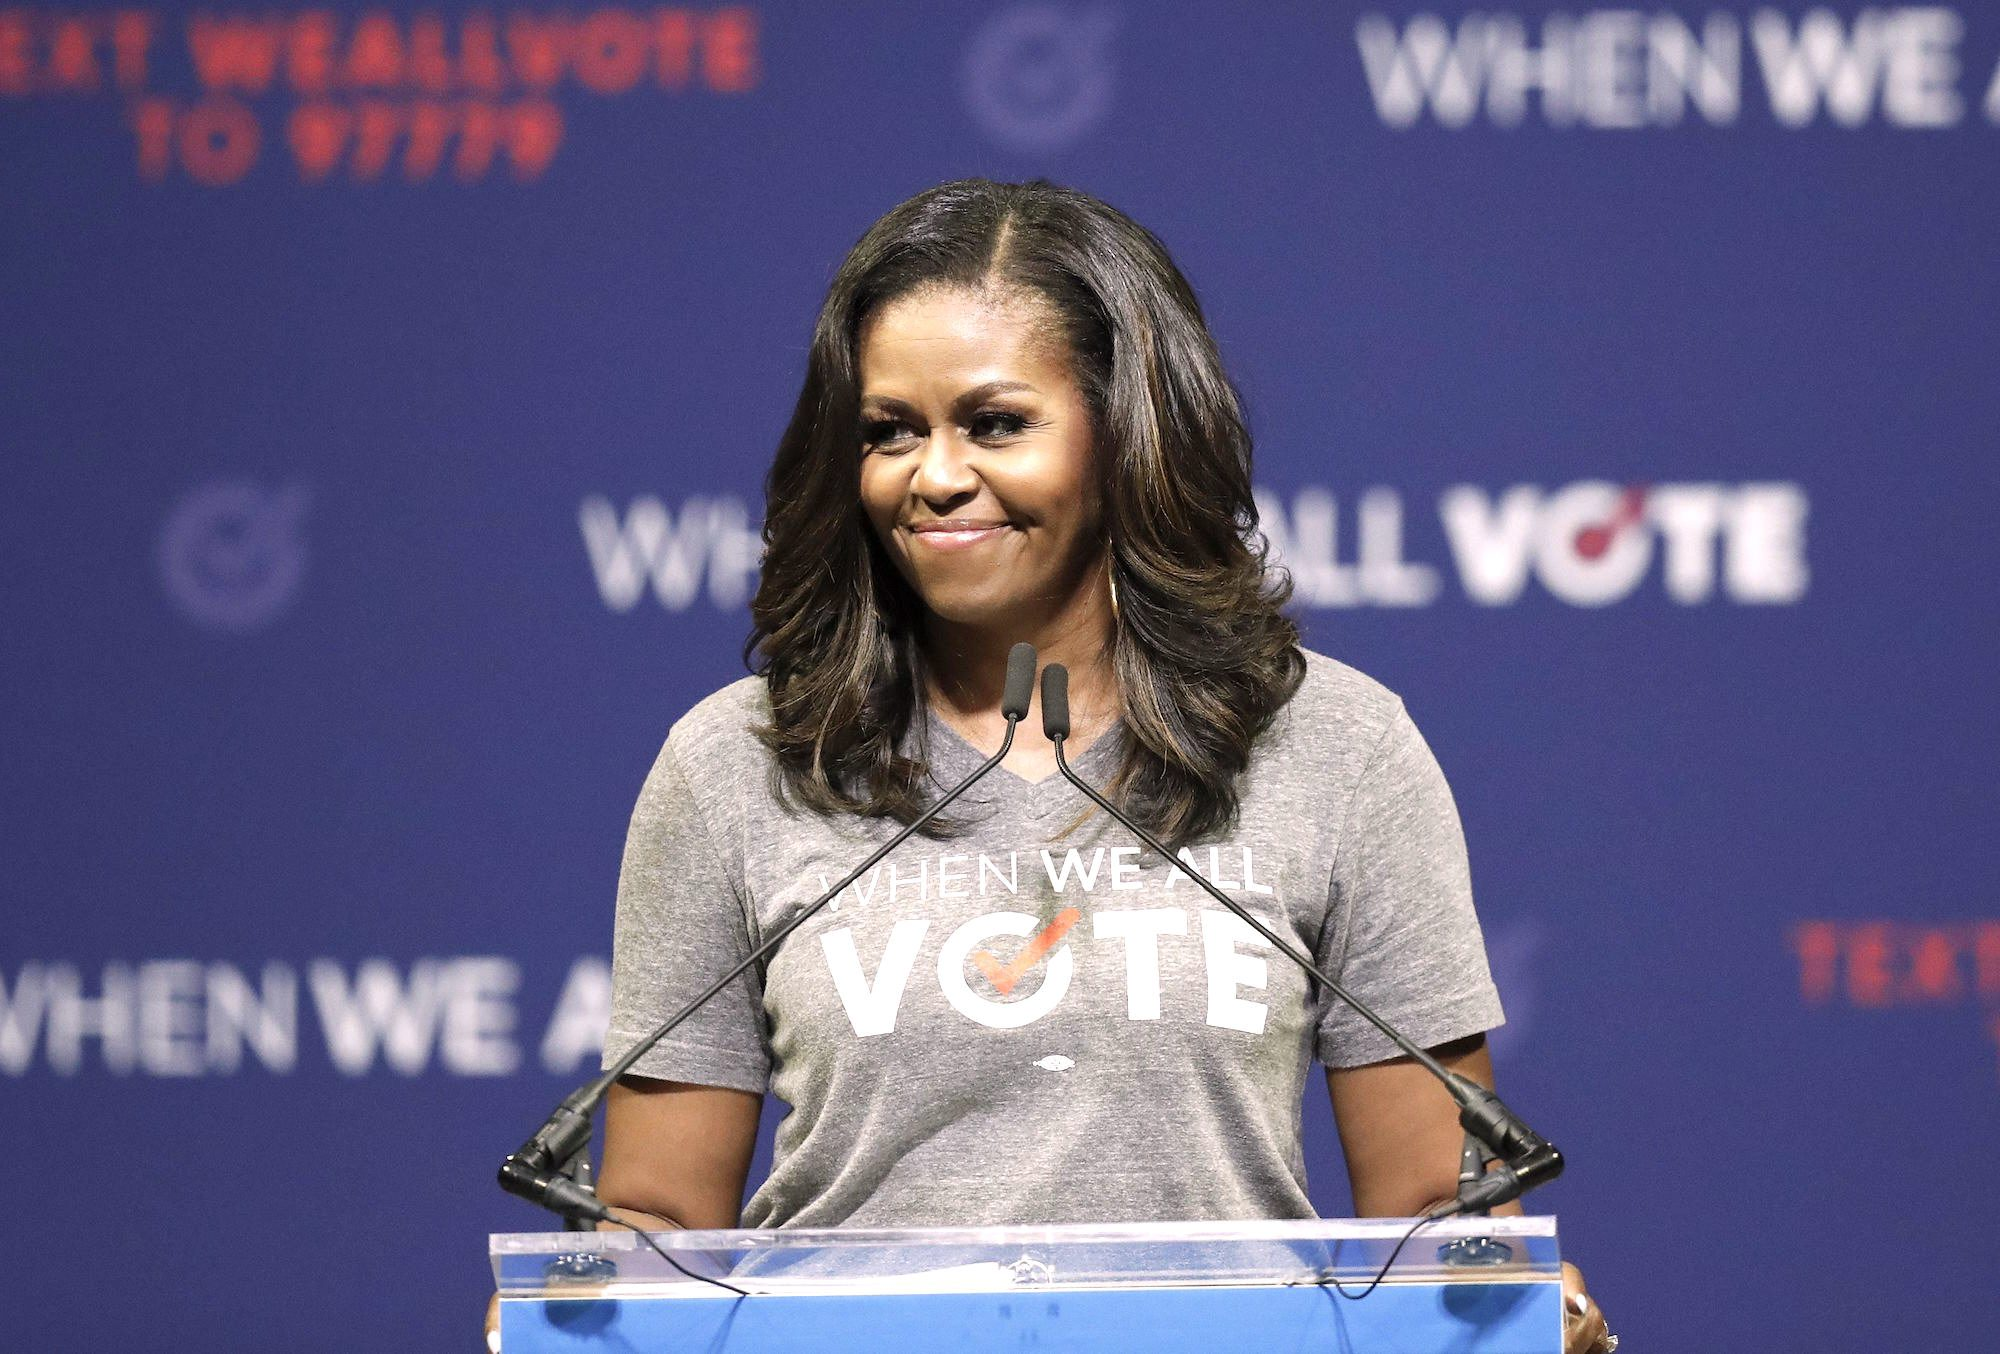 Inside the Beltway: Uh-oh: Michelle Obama would win